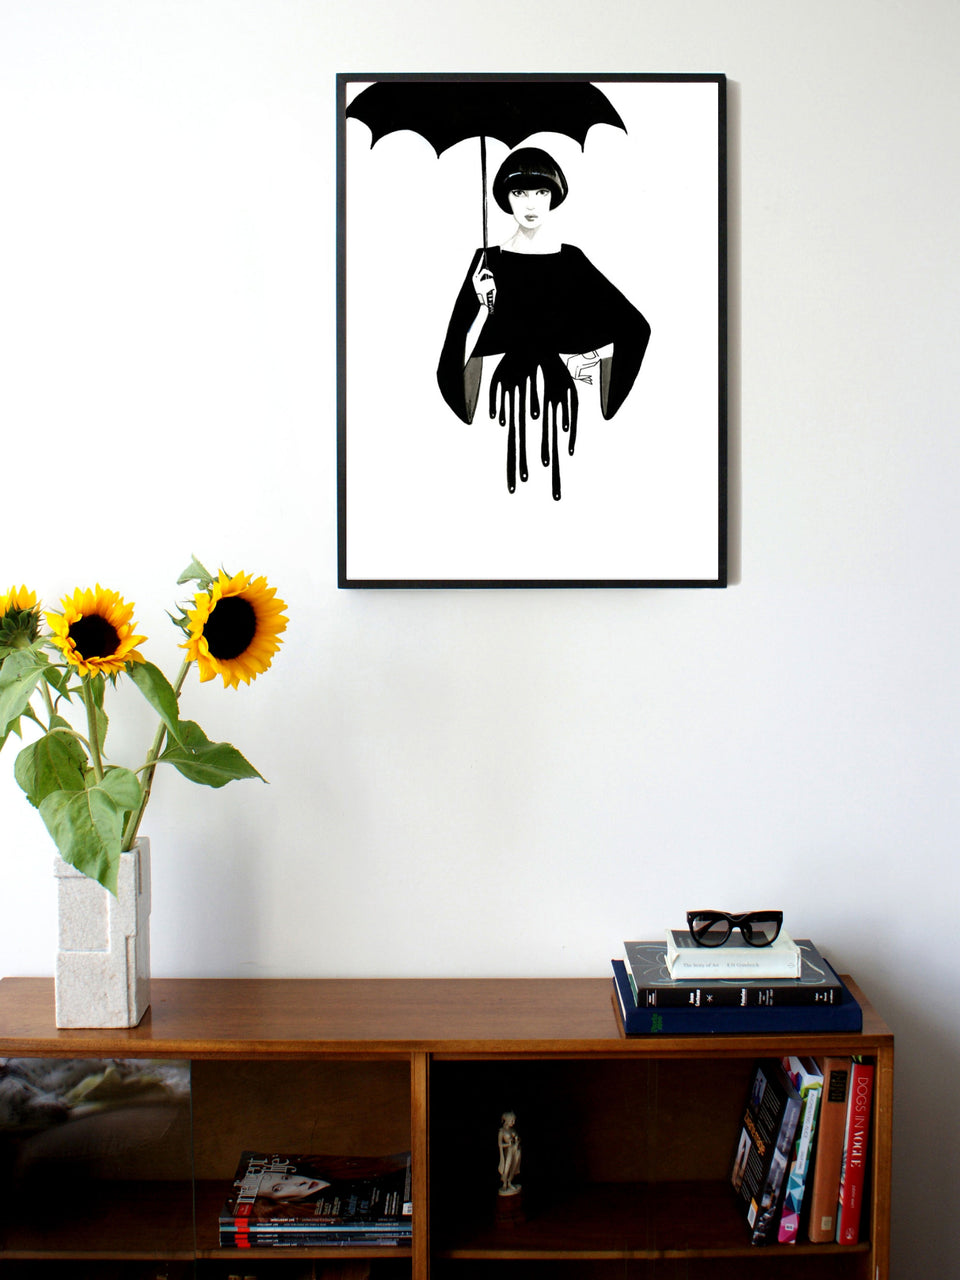 Fashion illustration print of Drip by Sjoukje Bierma - woman with umbrella - 60 x 80 cm framed